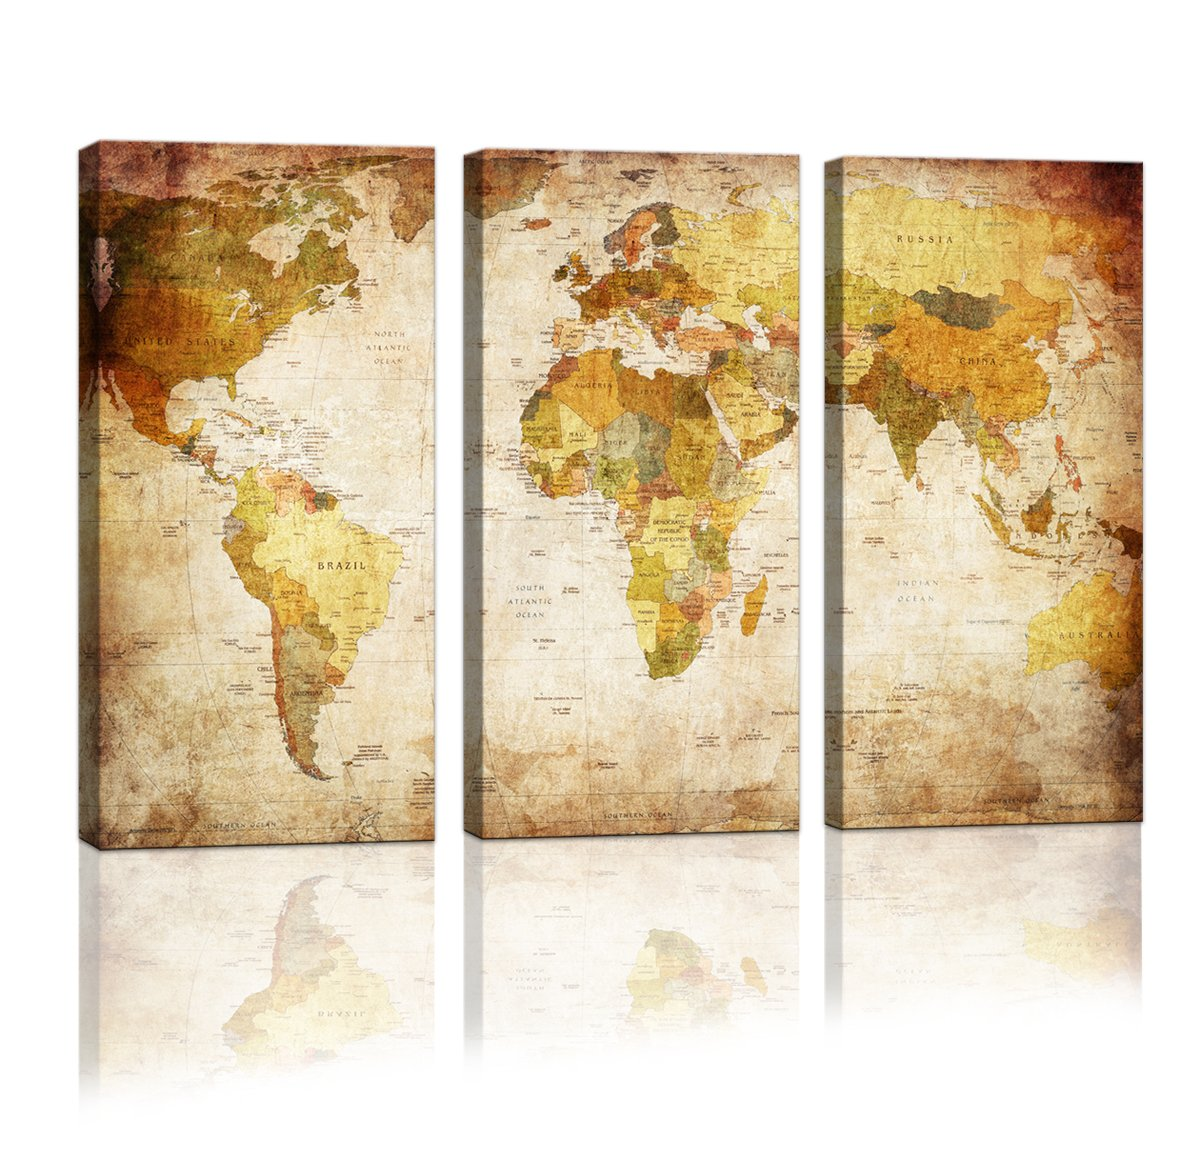 Amazon.com: youkuart Canvas Prints Map Art, 3 Panels World Map Wall ...